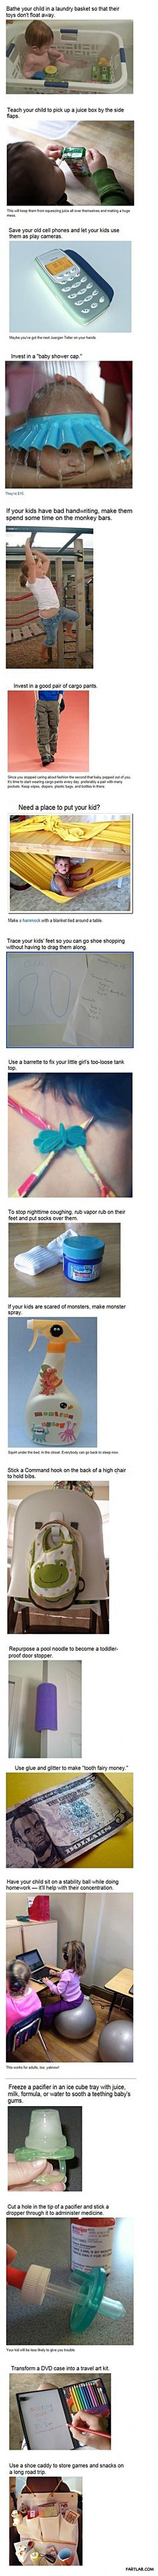 How to be an awesome parent…